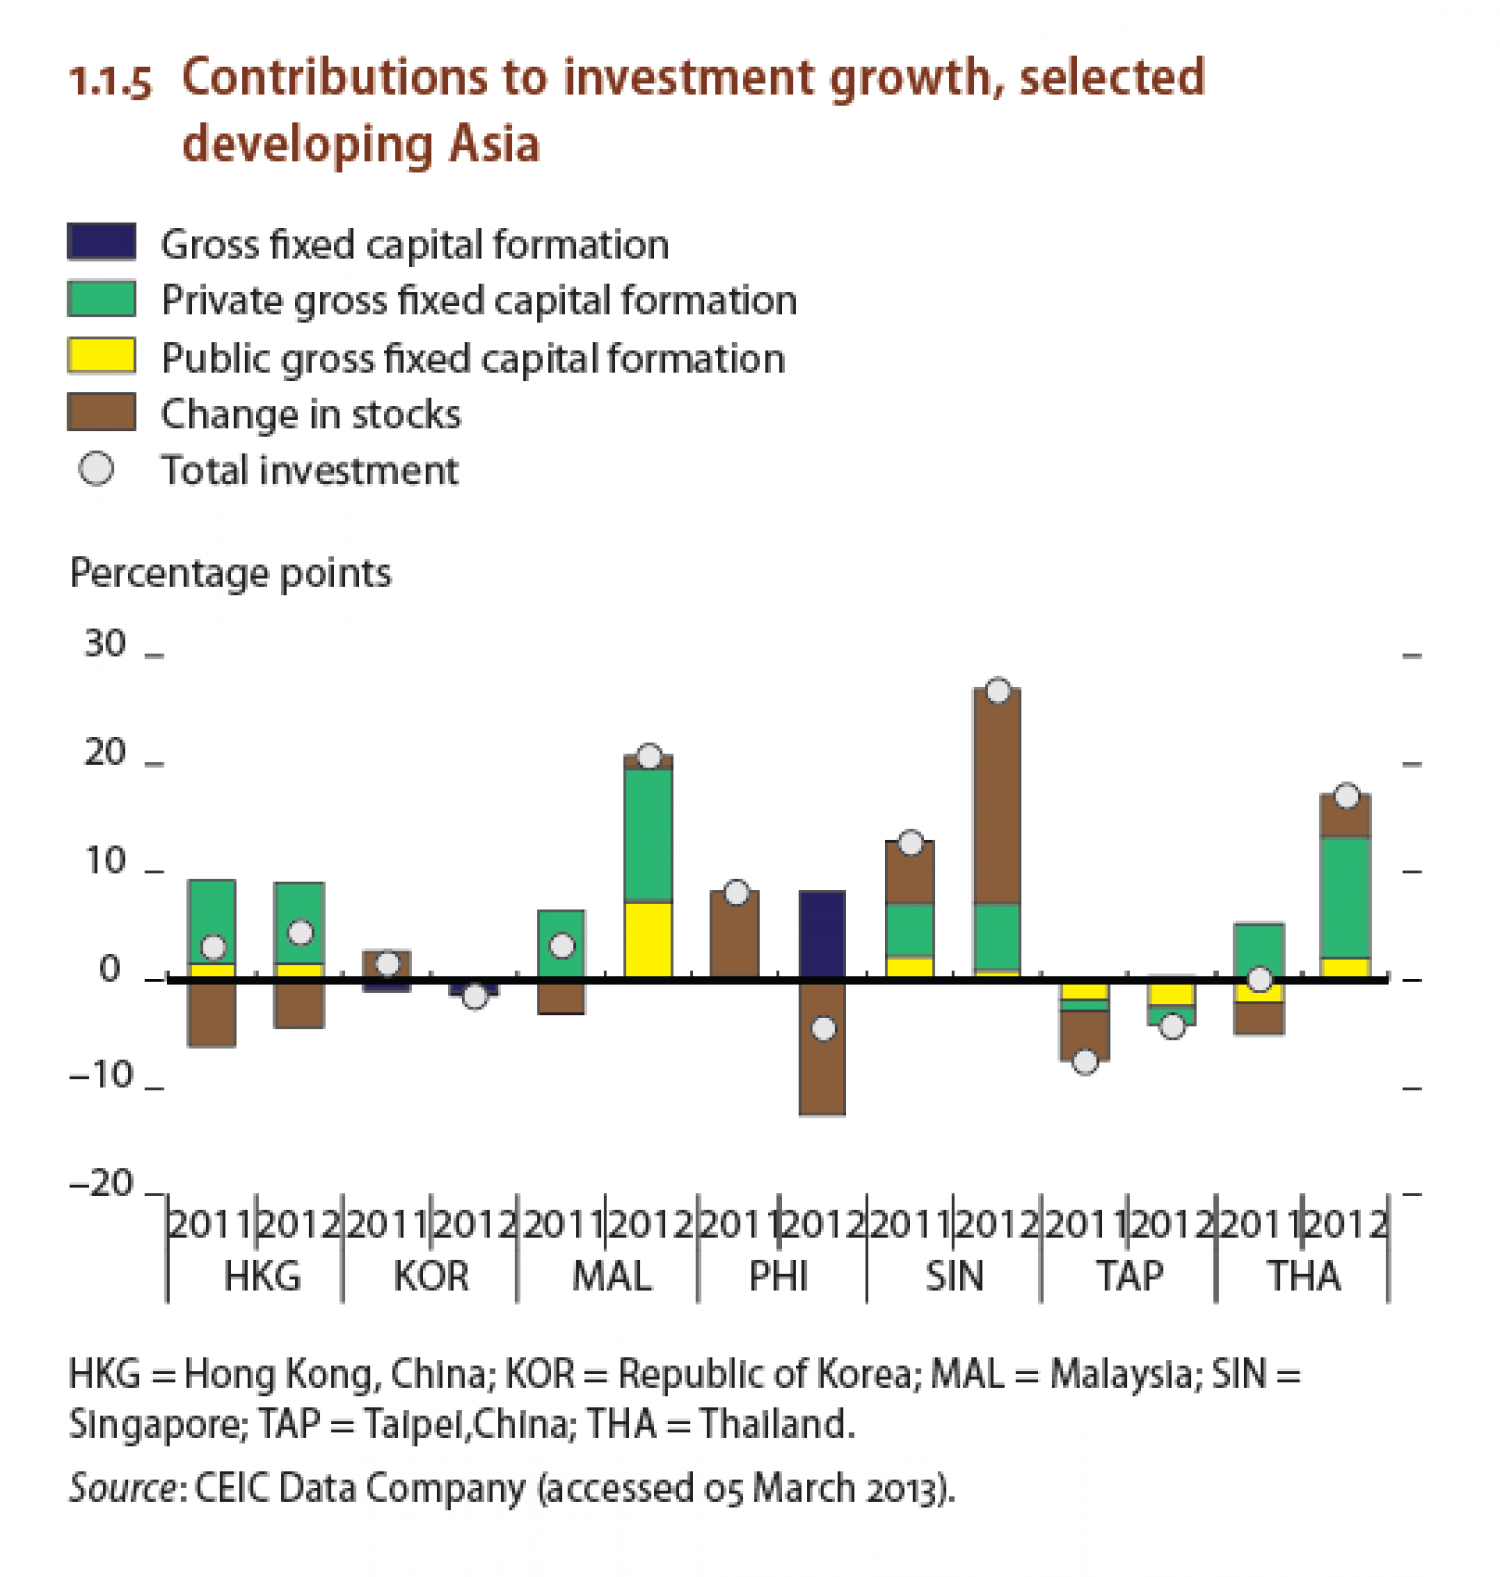 Contributions to investment growth, selected developing Asia Infographic